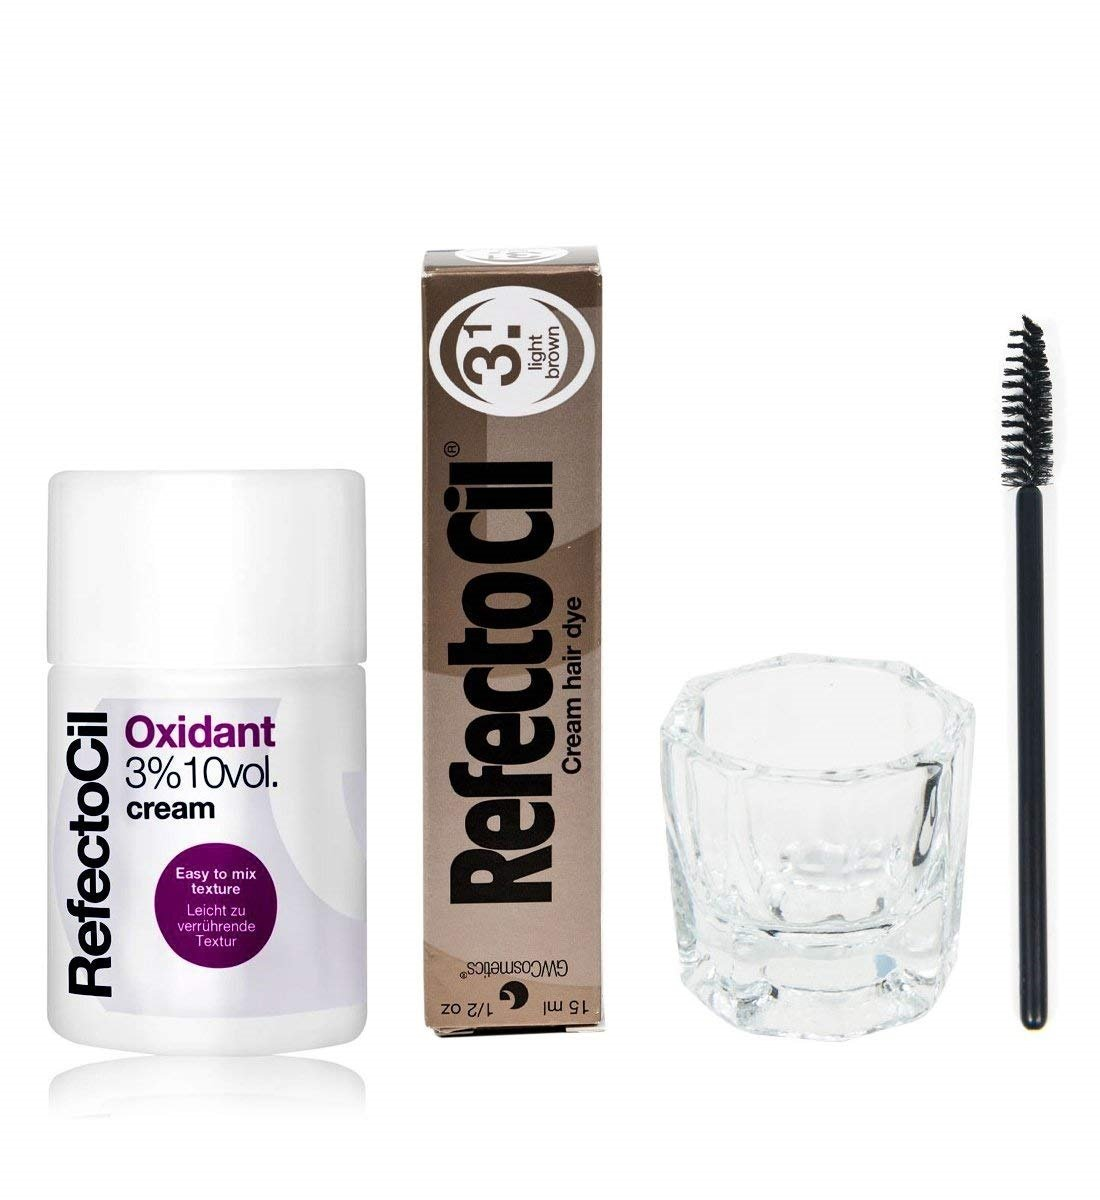 Refectocil KIT - Light Brown Cream Hair Dye + Creme Oxidant 3% 3.4oz + Mixing Dish + Mascara Brush